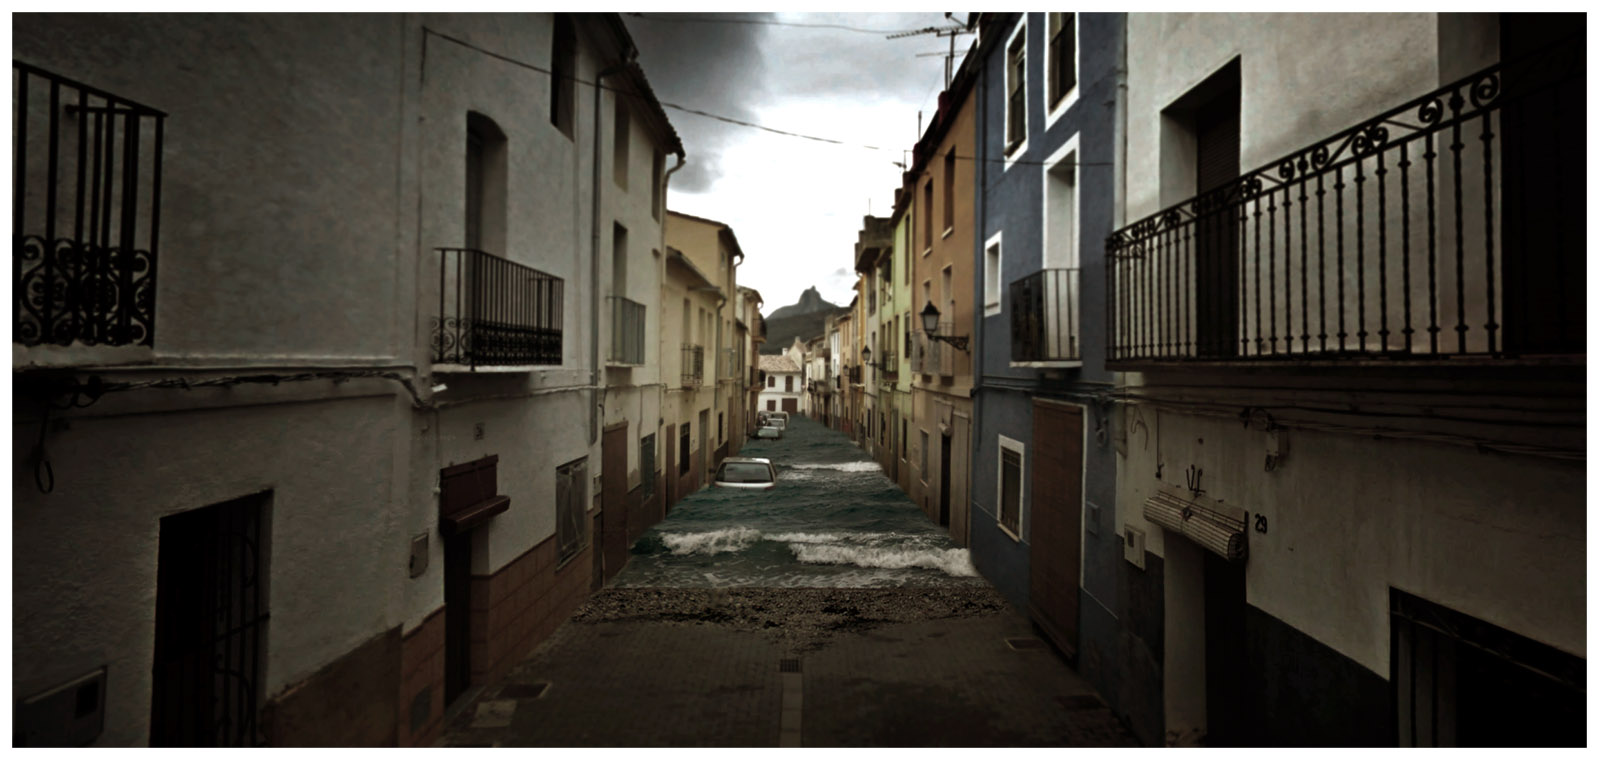 cinemascapes: my street view edition - Spanish floods / Aaron Hobson / Aaron Hobson